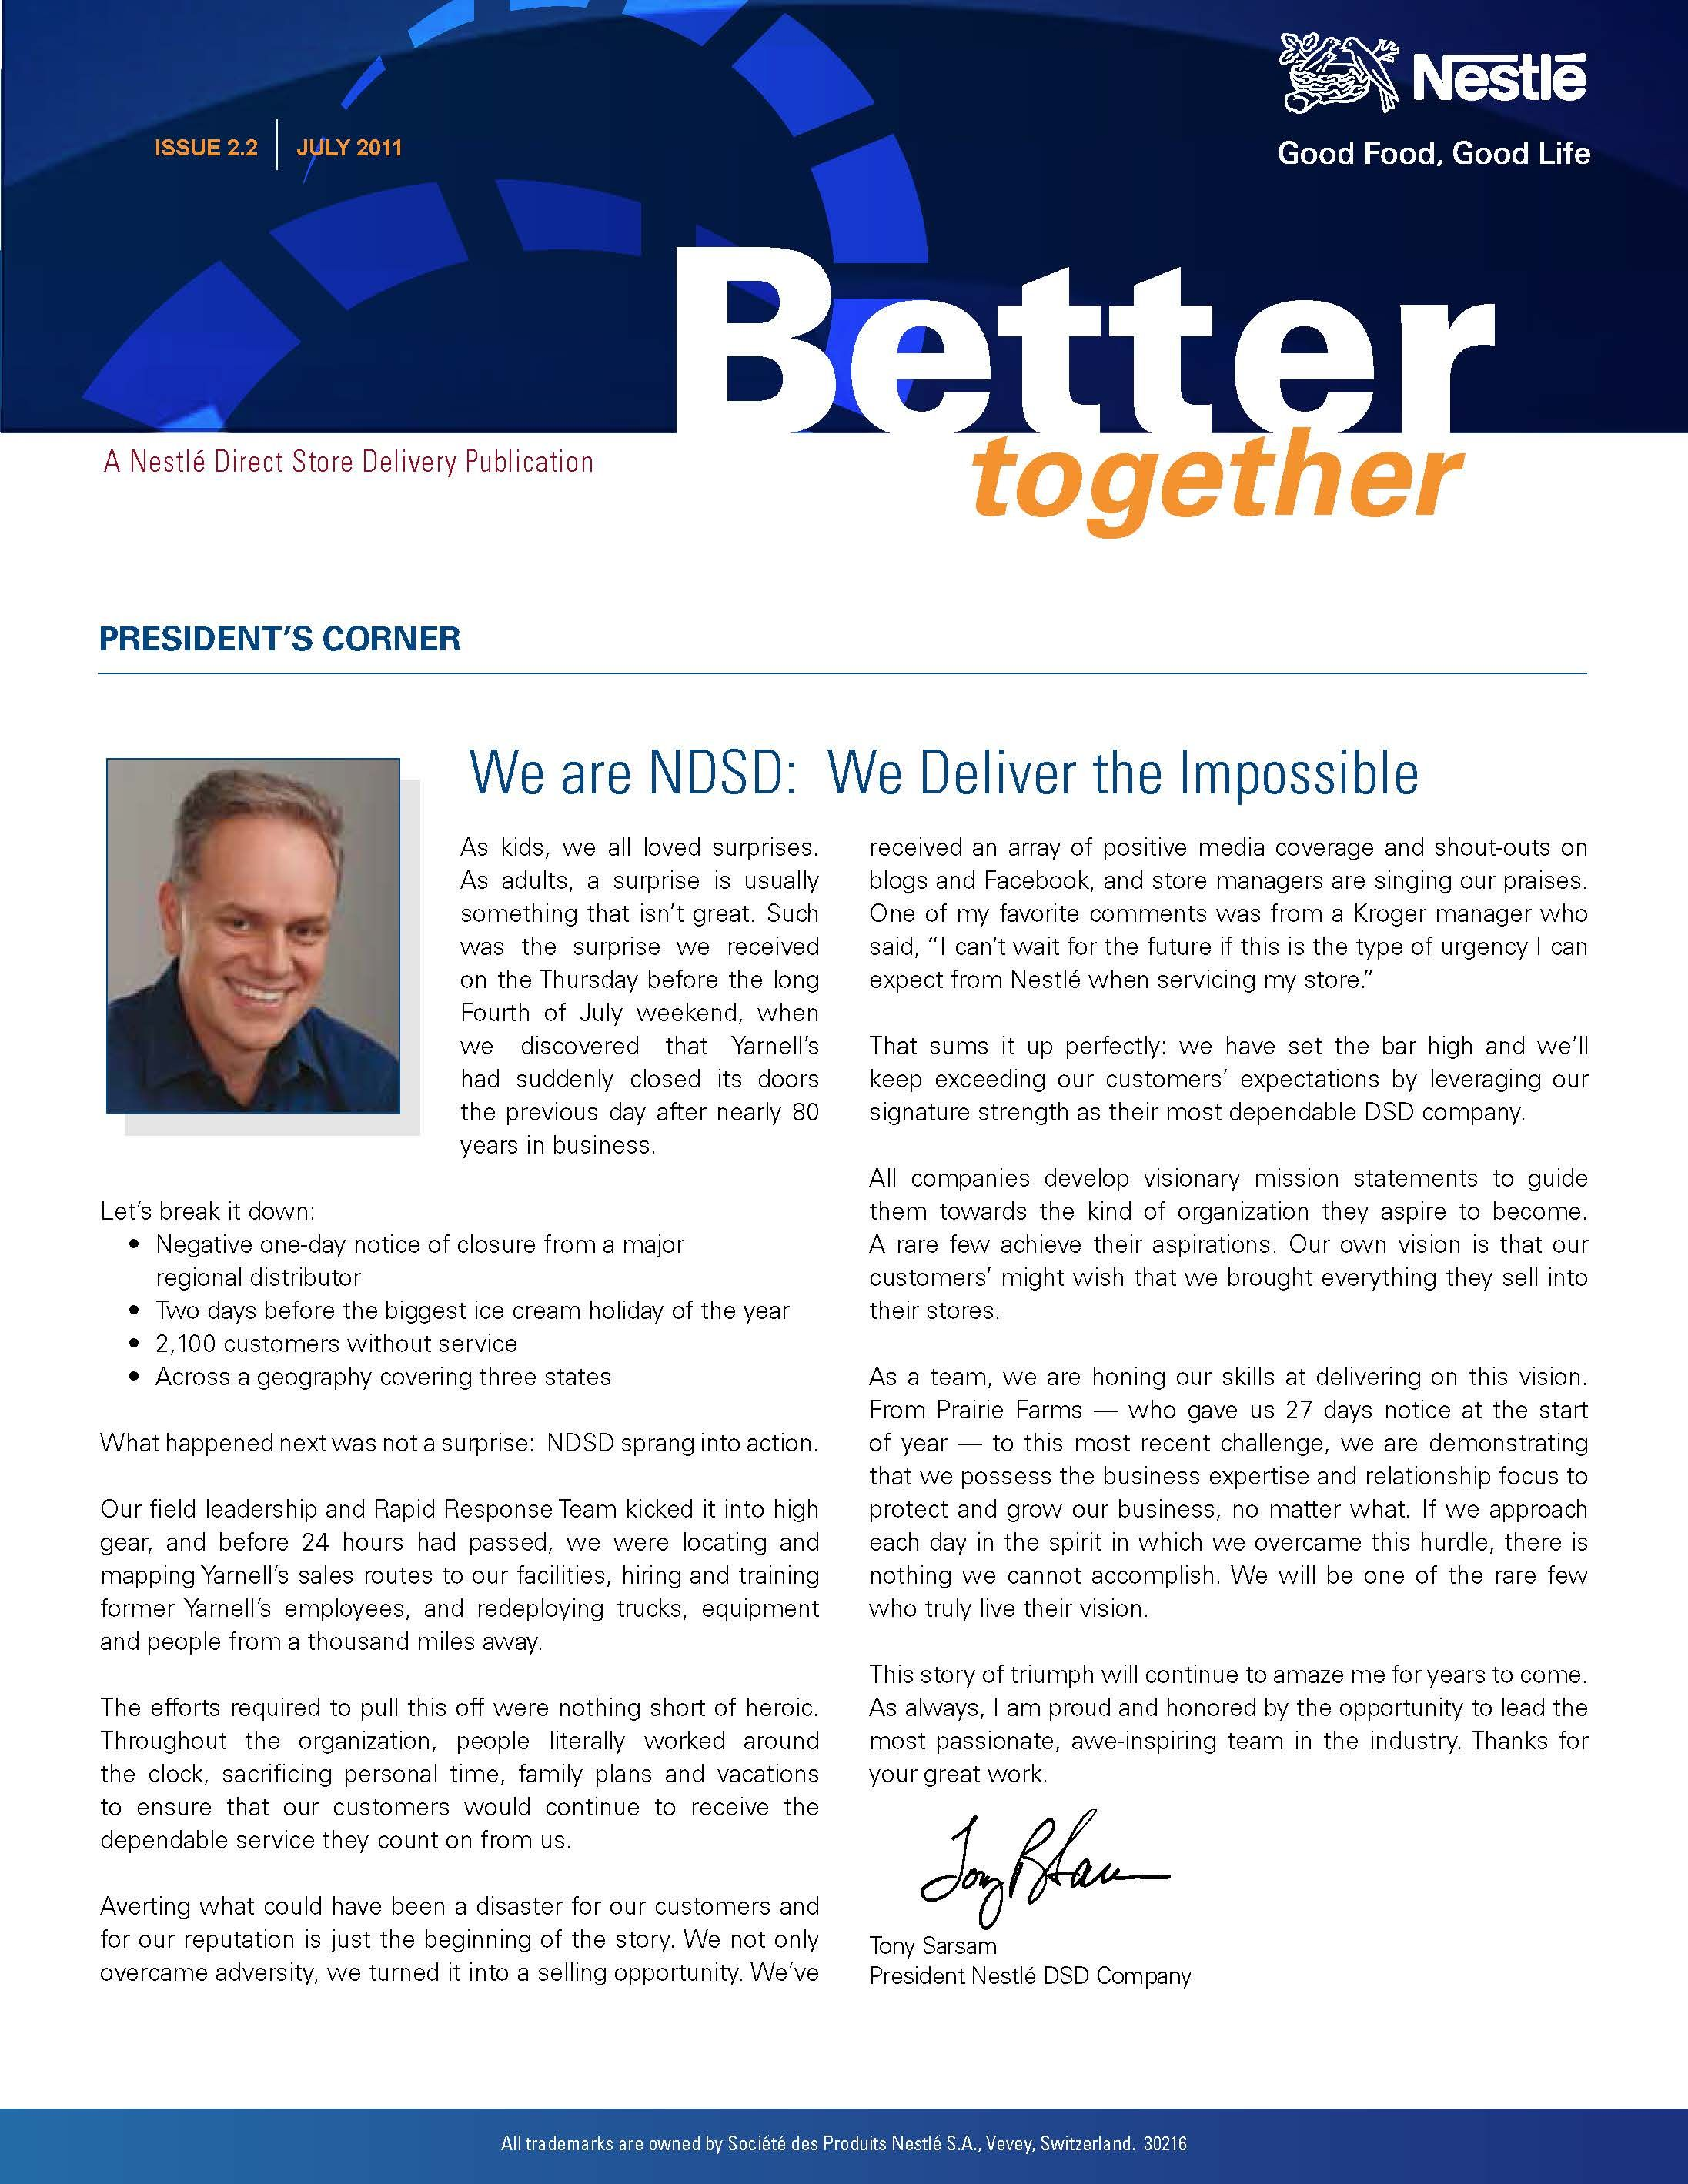 Better Together Nestle DsdS SemiMonthly Newsletter From The